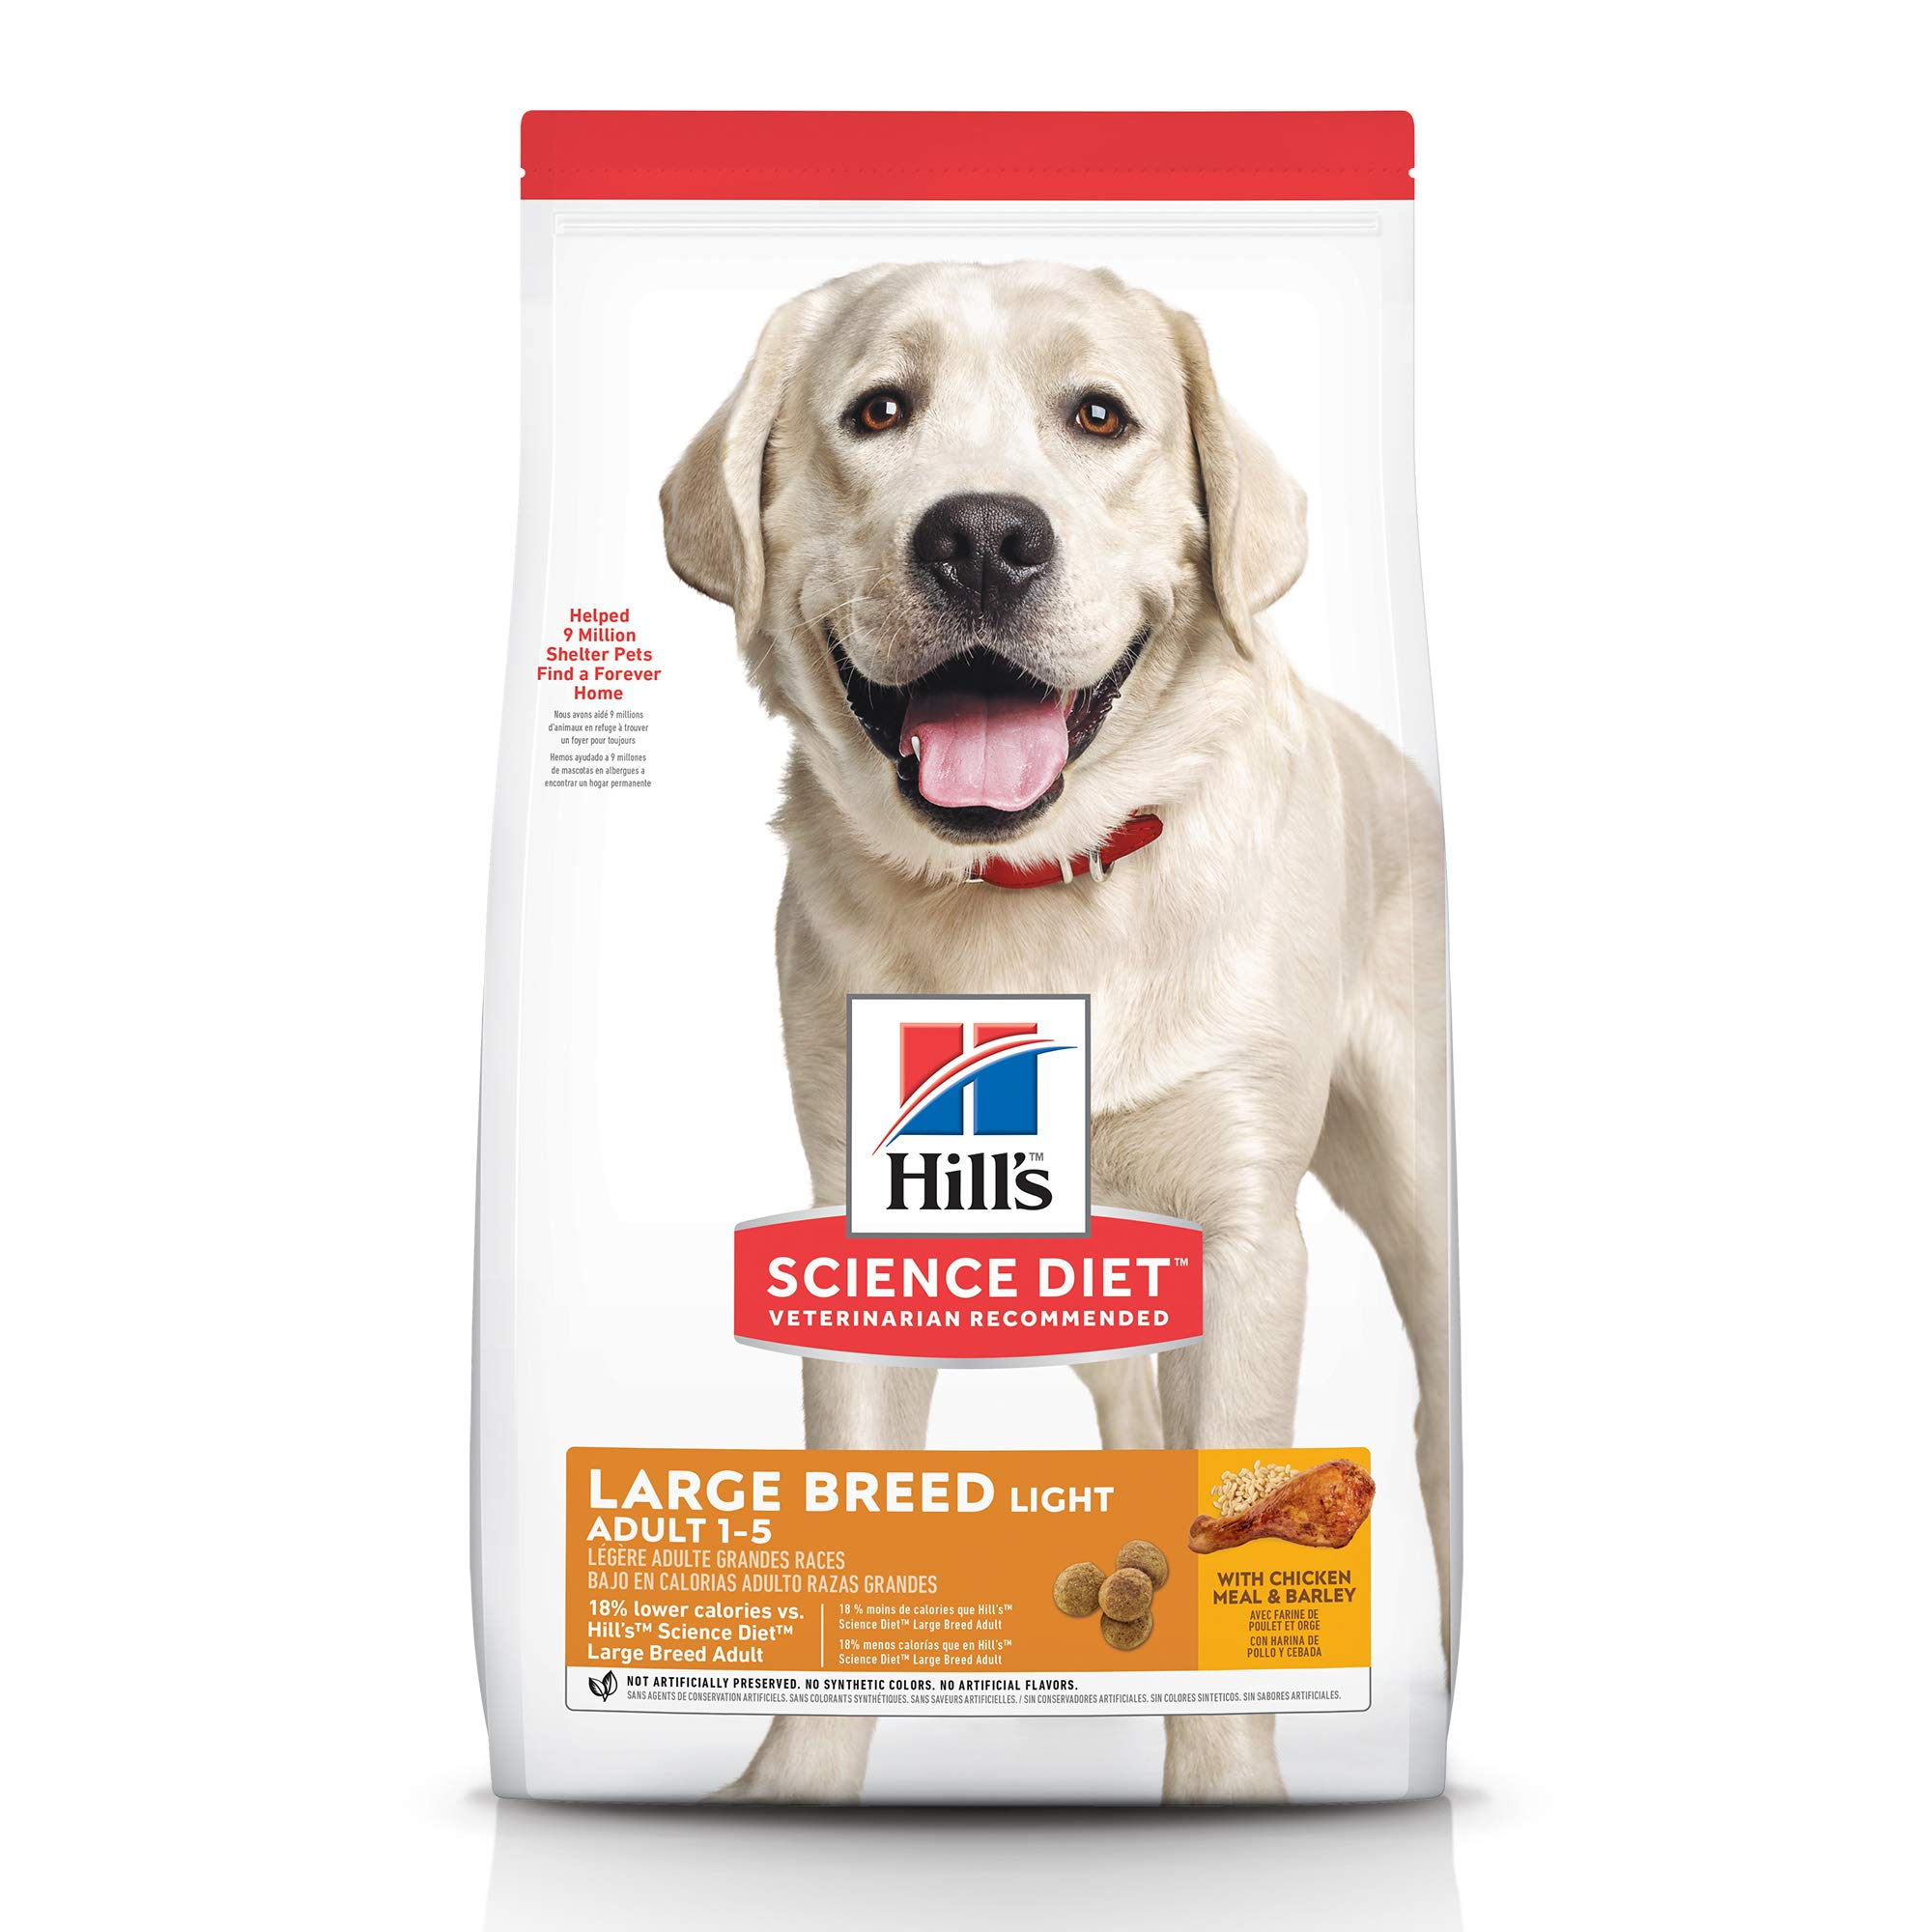 Hill's Science Diet Dry Dog Food, Adult, Large Breeds, Light, Chicken Meal & Barley Recipe for Healthy Weight & Weight Management, 30 lb Bag